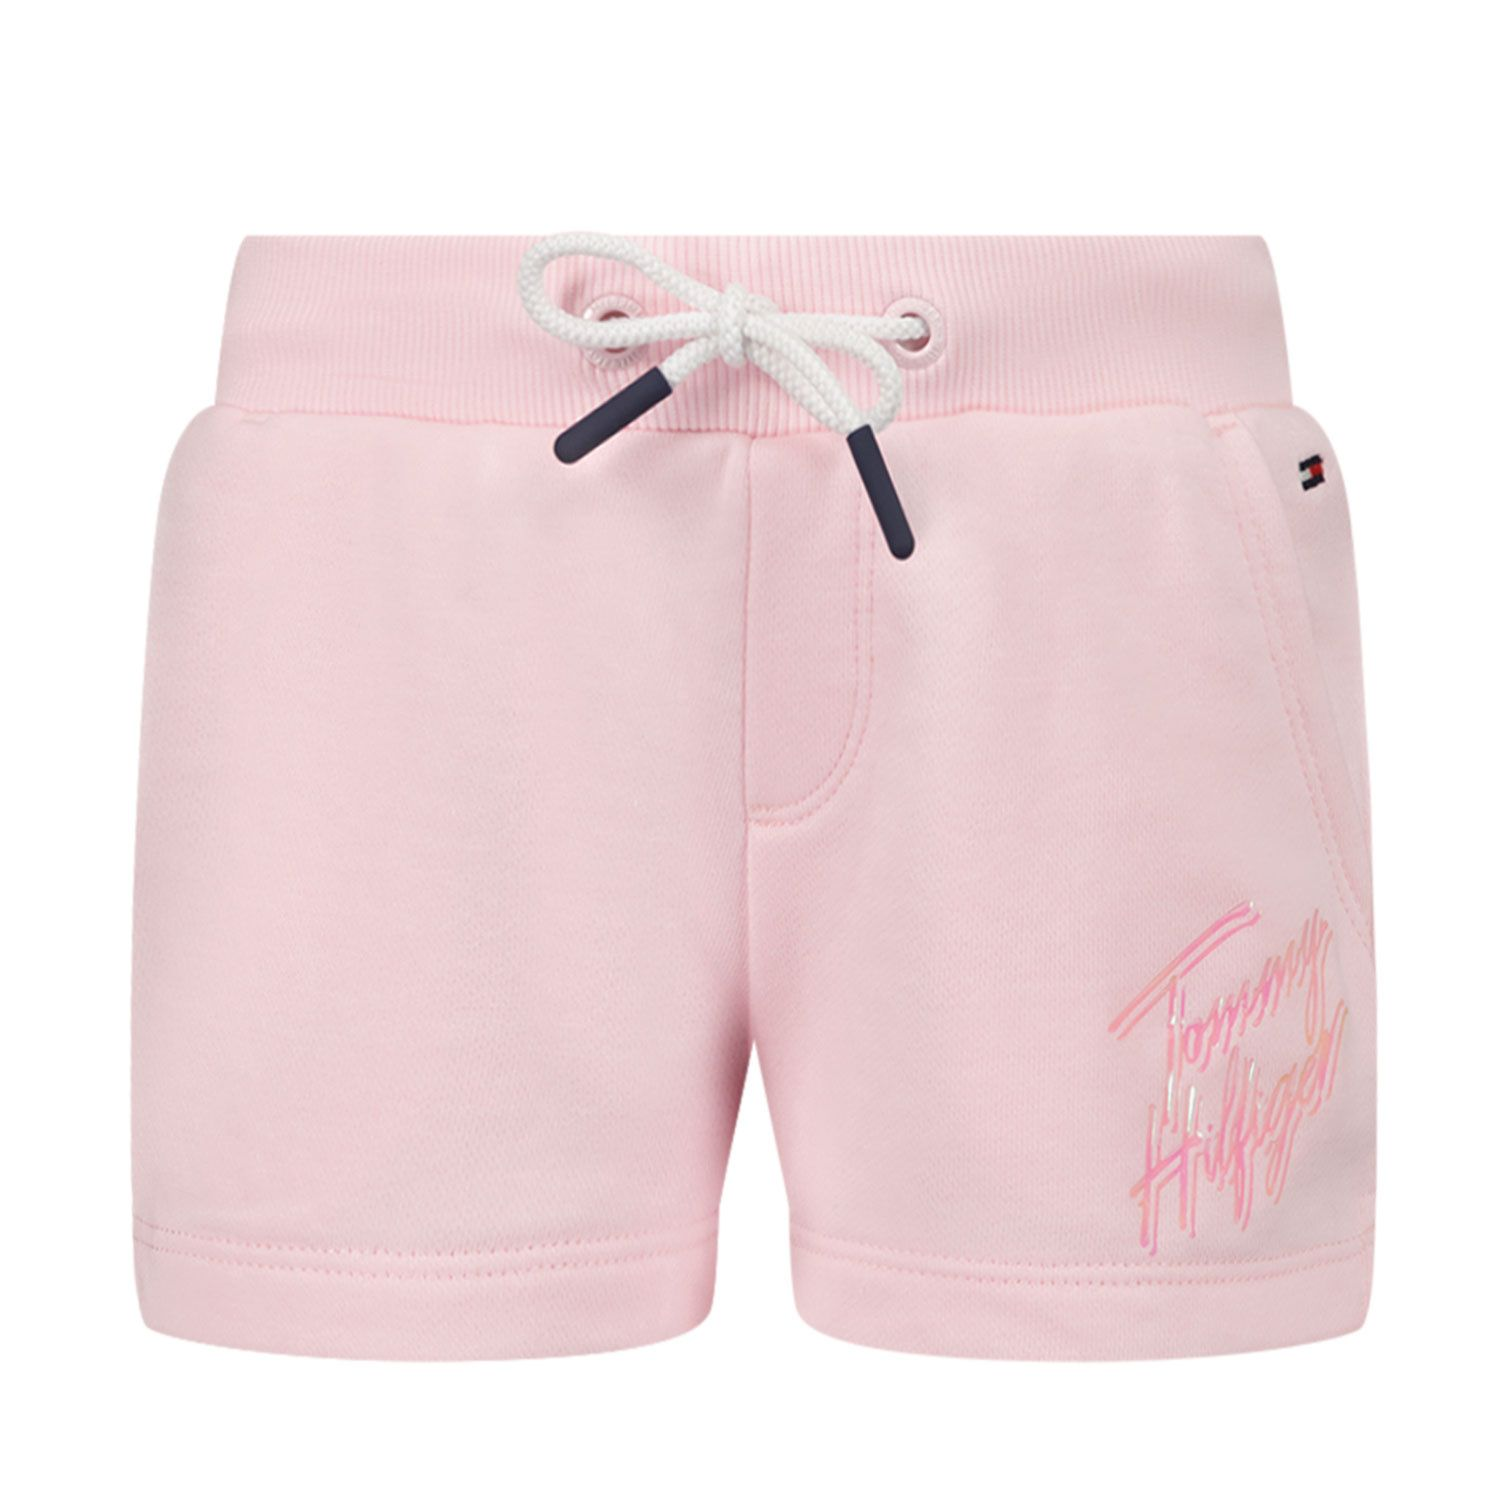 Picture of Tommy Hilfiger KG0KG05899 B baby shorts light pink